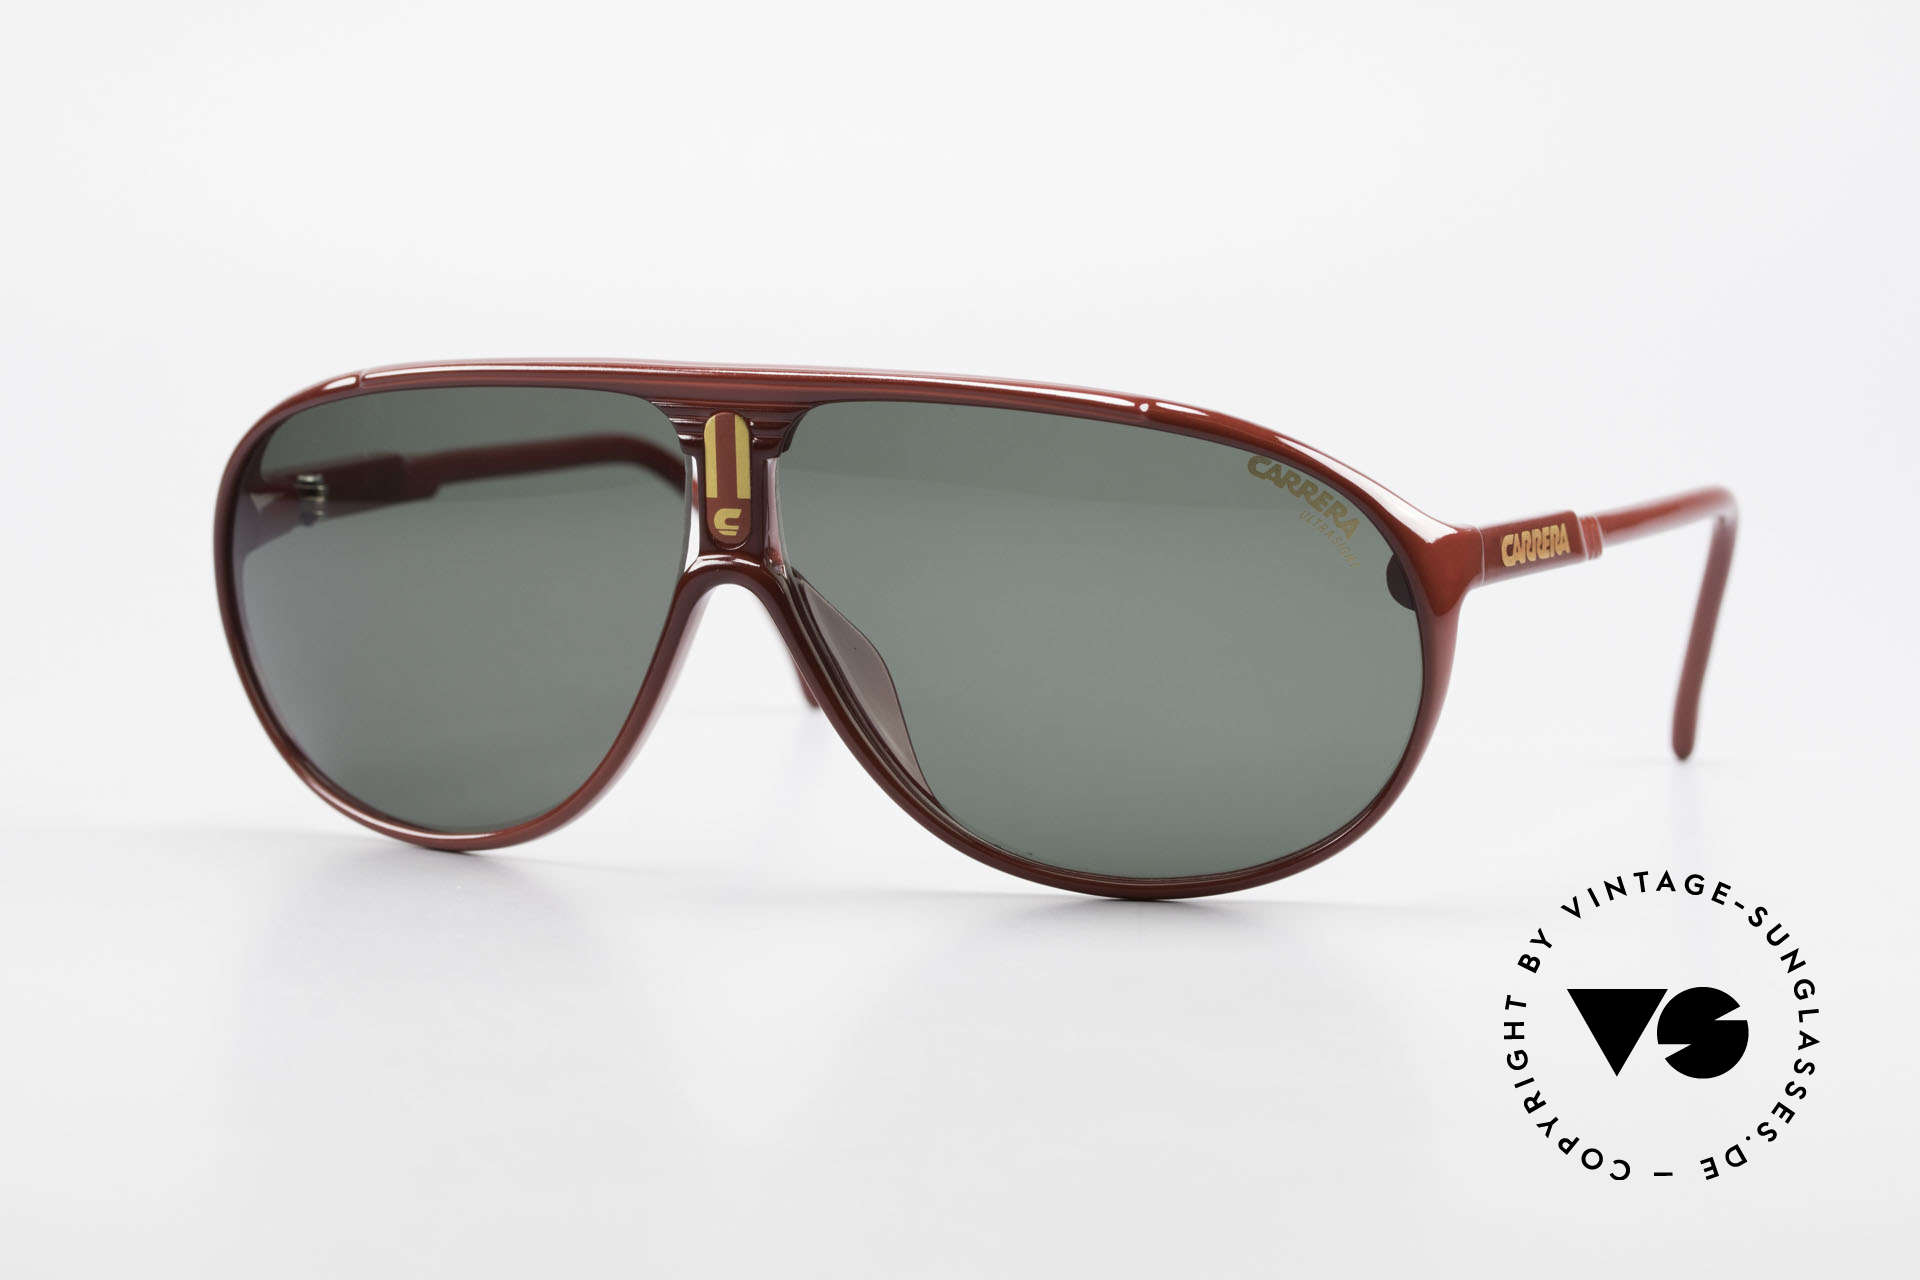 Carrera 5412 3 Sets Of Different Sun Lenses, simply ingenious 80's vintage sunglasses by CARRERA, Made for Men and Women